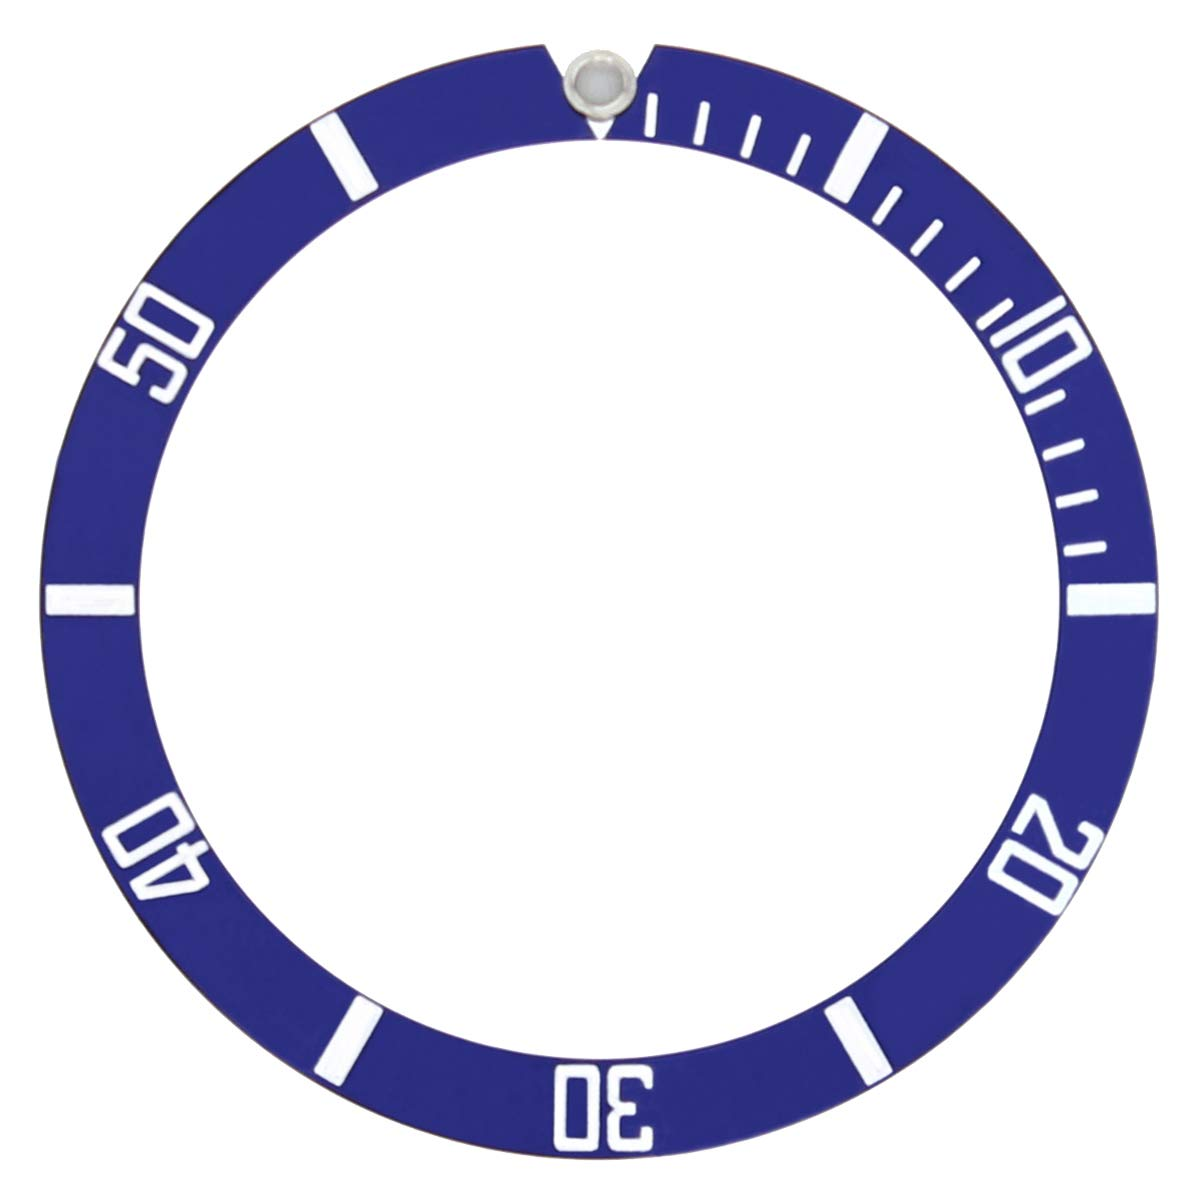 BEZEL INSERT FOR TUDOR HERITAGE BLACK BAY 79230R 79230N 79220 WATCH BLUE by Ewatchparts